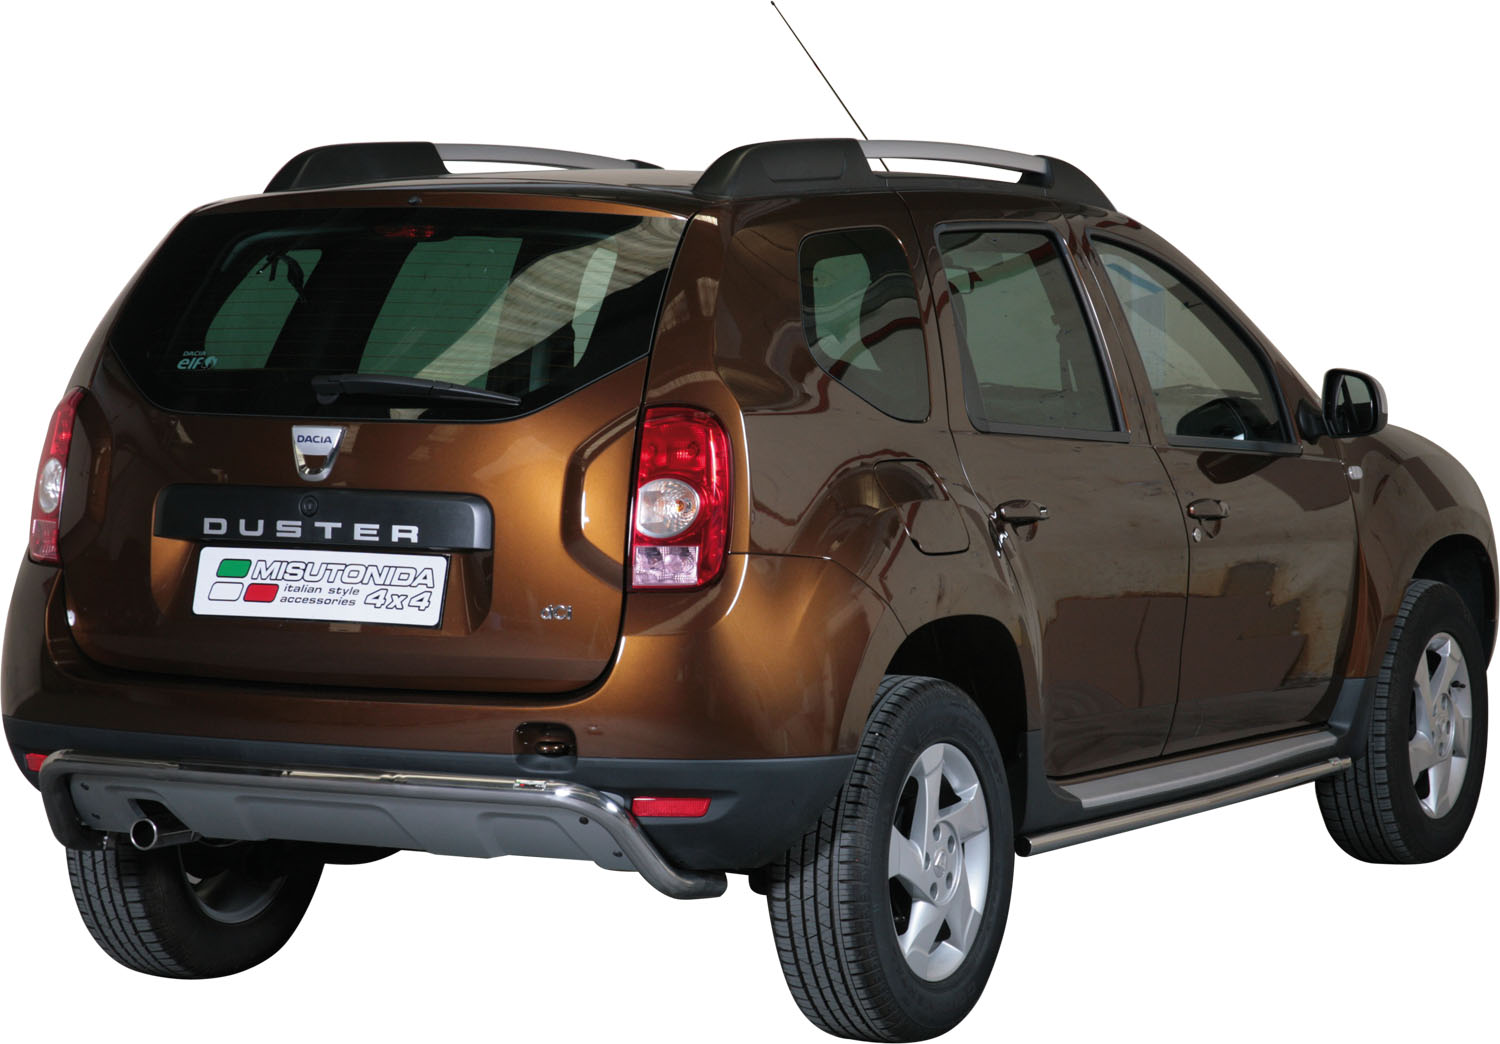 pare choc arriere inox 50 dacia duster 2010. Black Bedroom Furniture Sets. Home Design Ideas